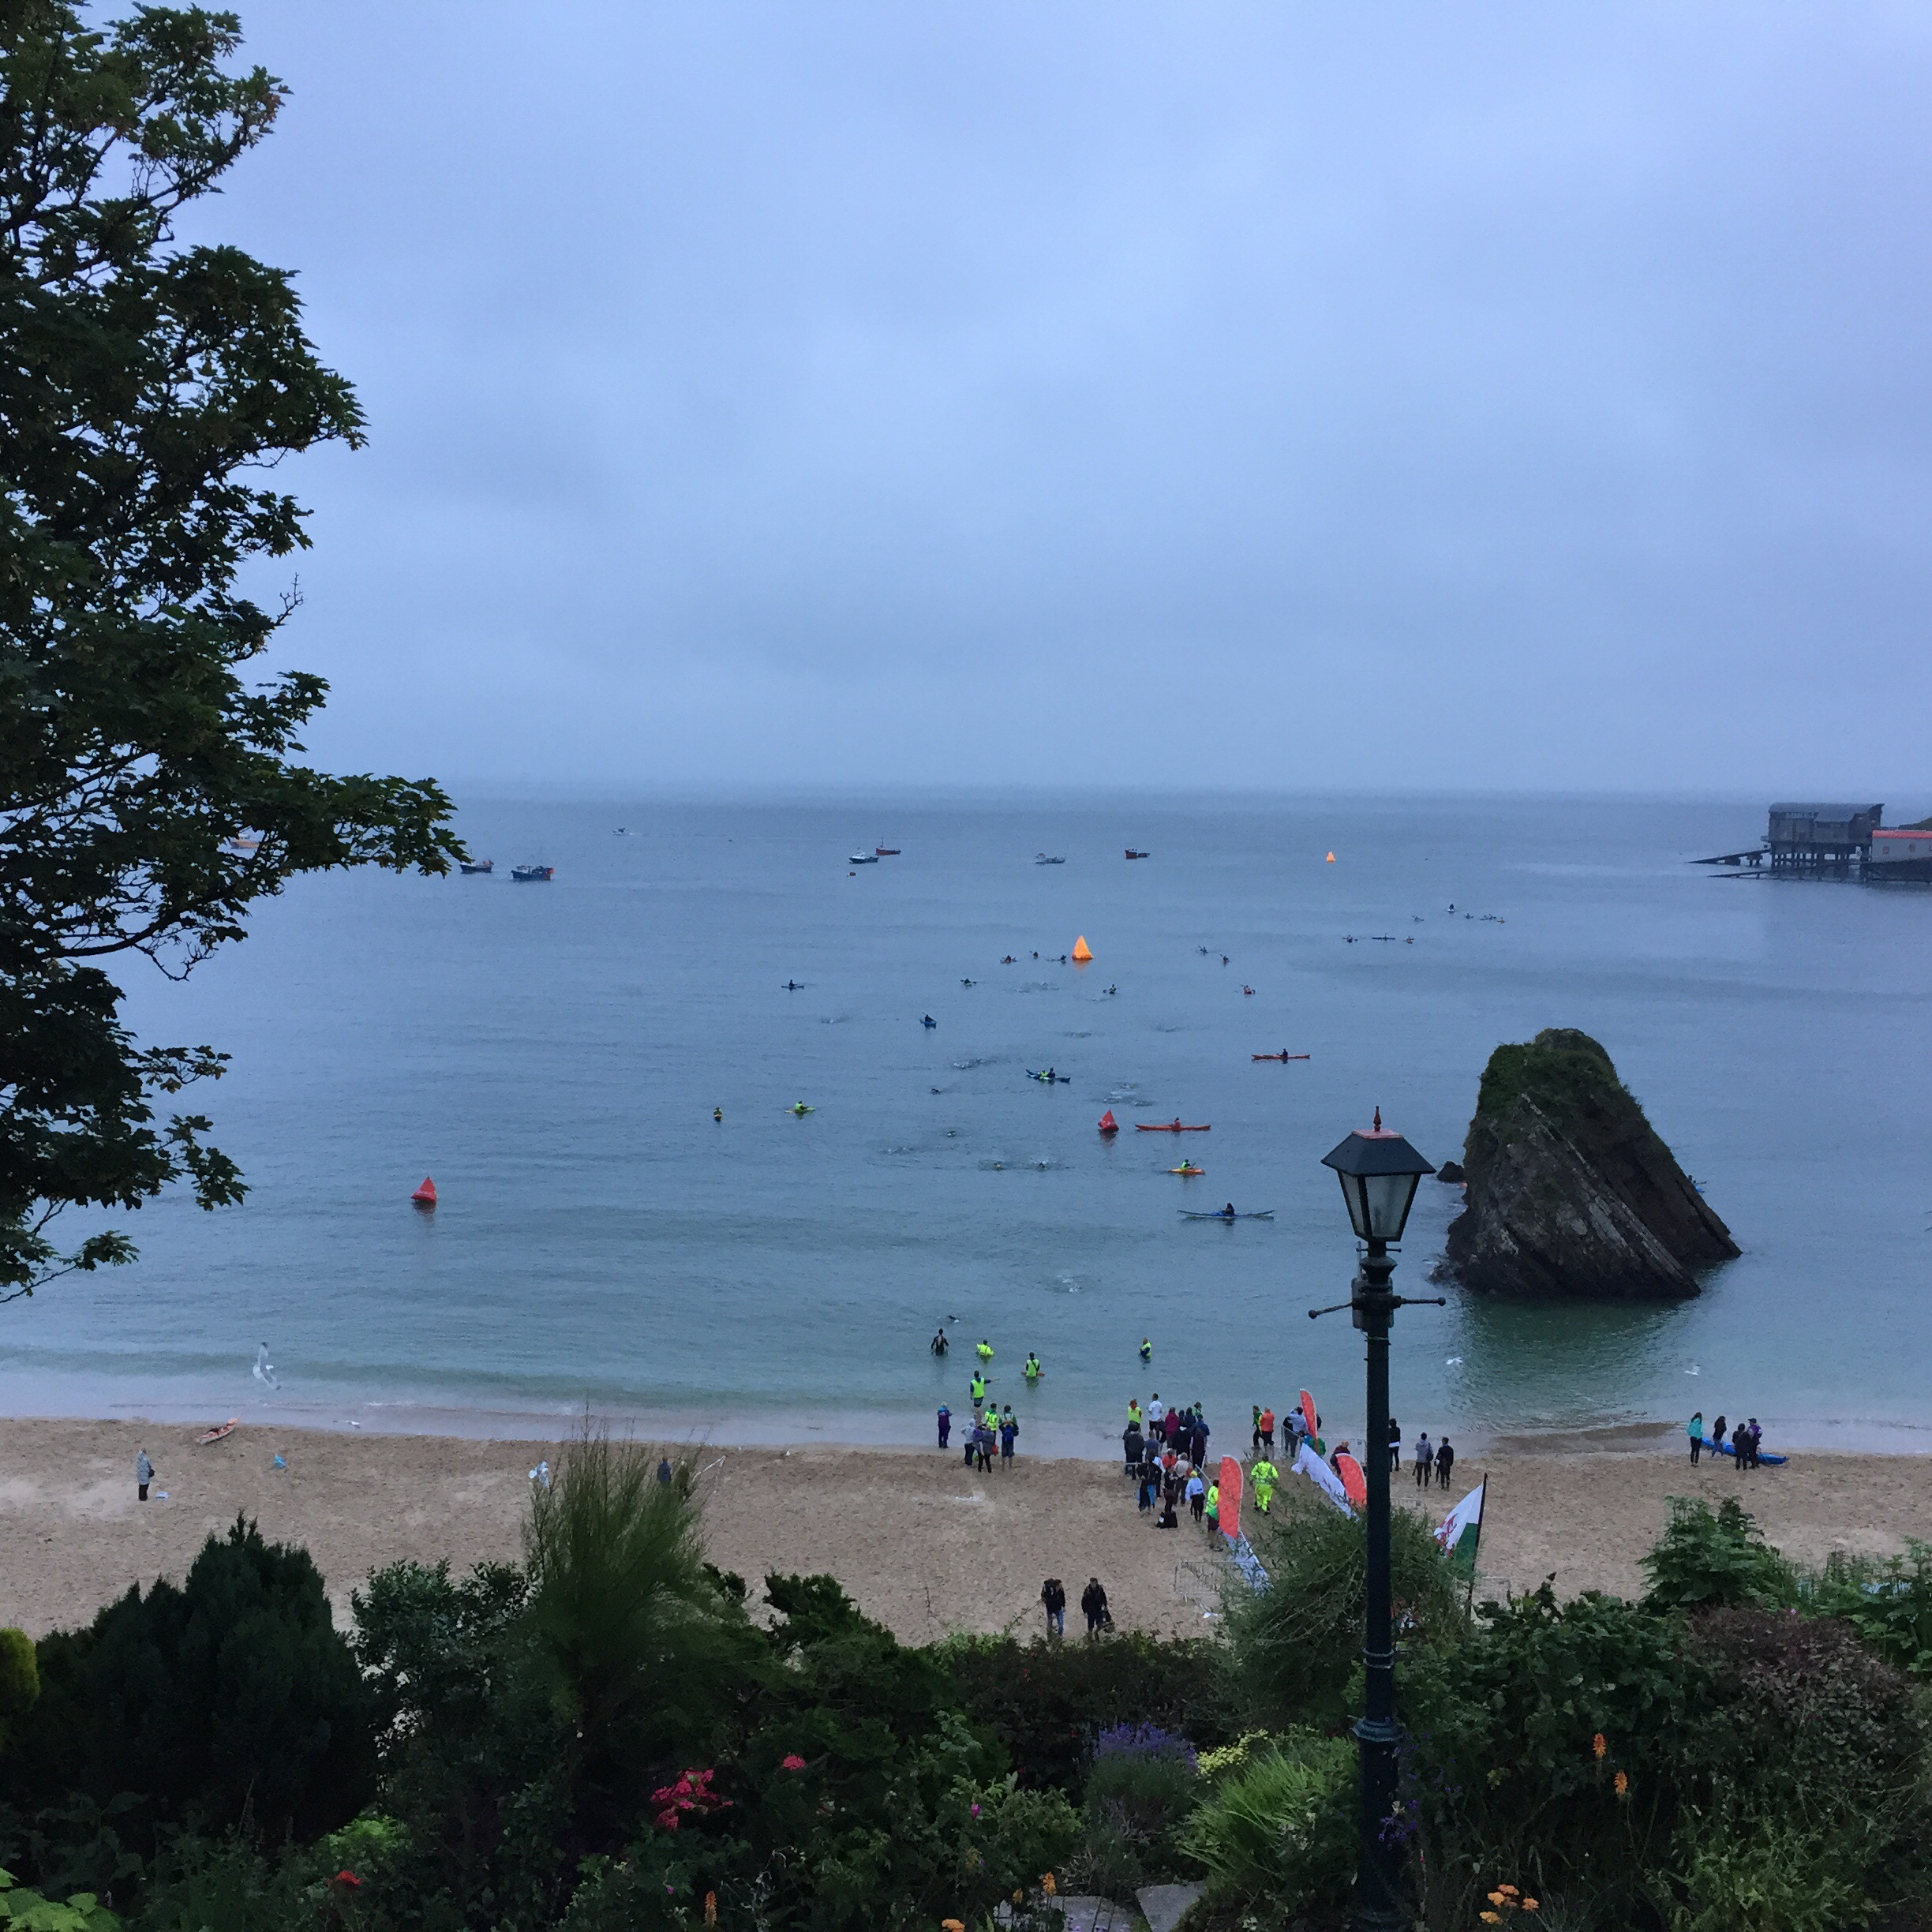 Looking down at the beach and sea from the street in Tenby.